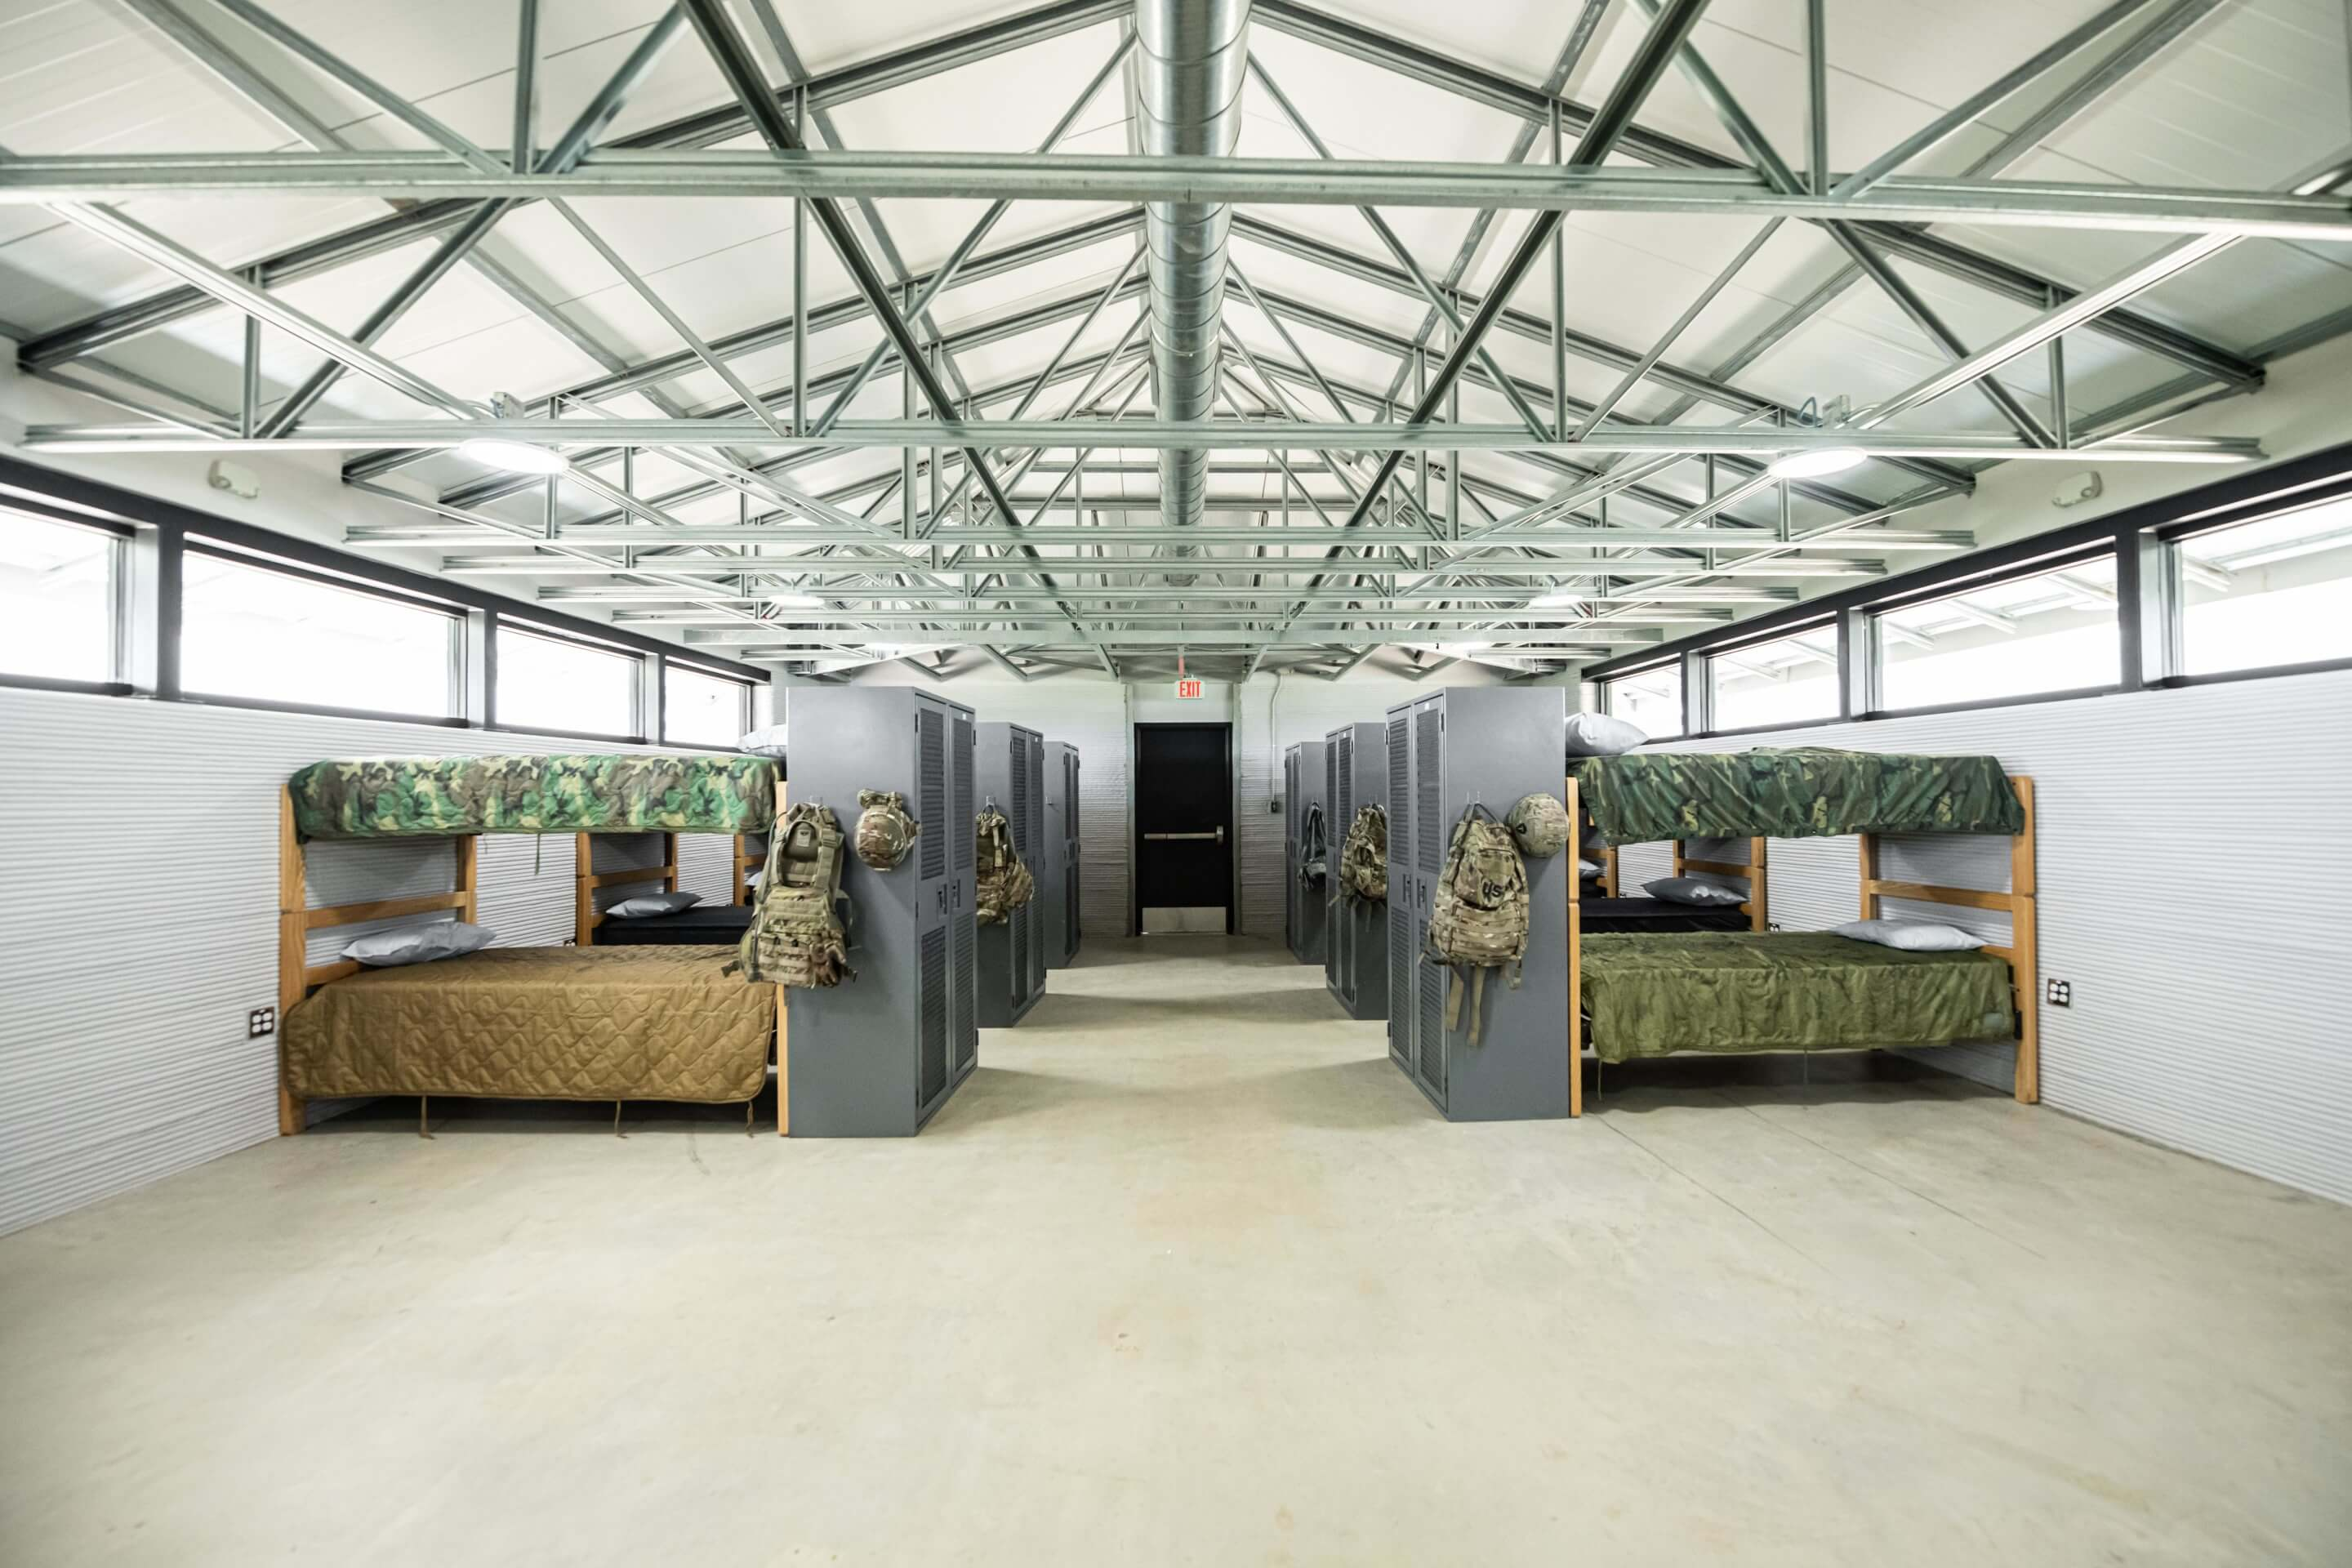 large room with bunk beds and army fatigues